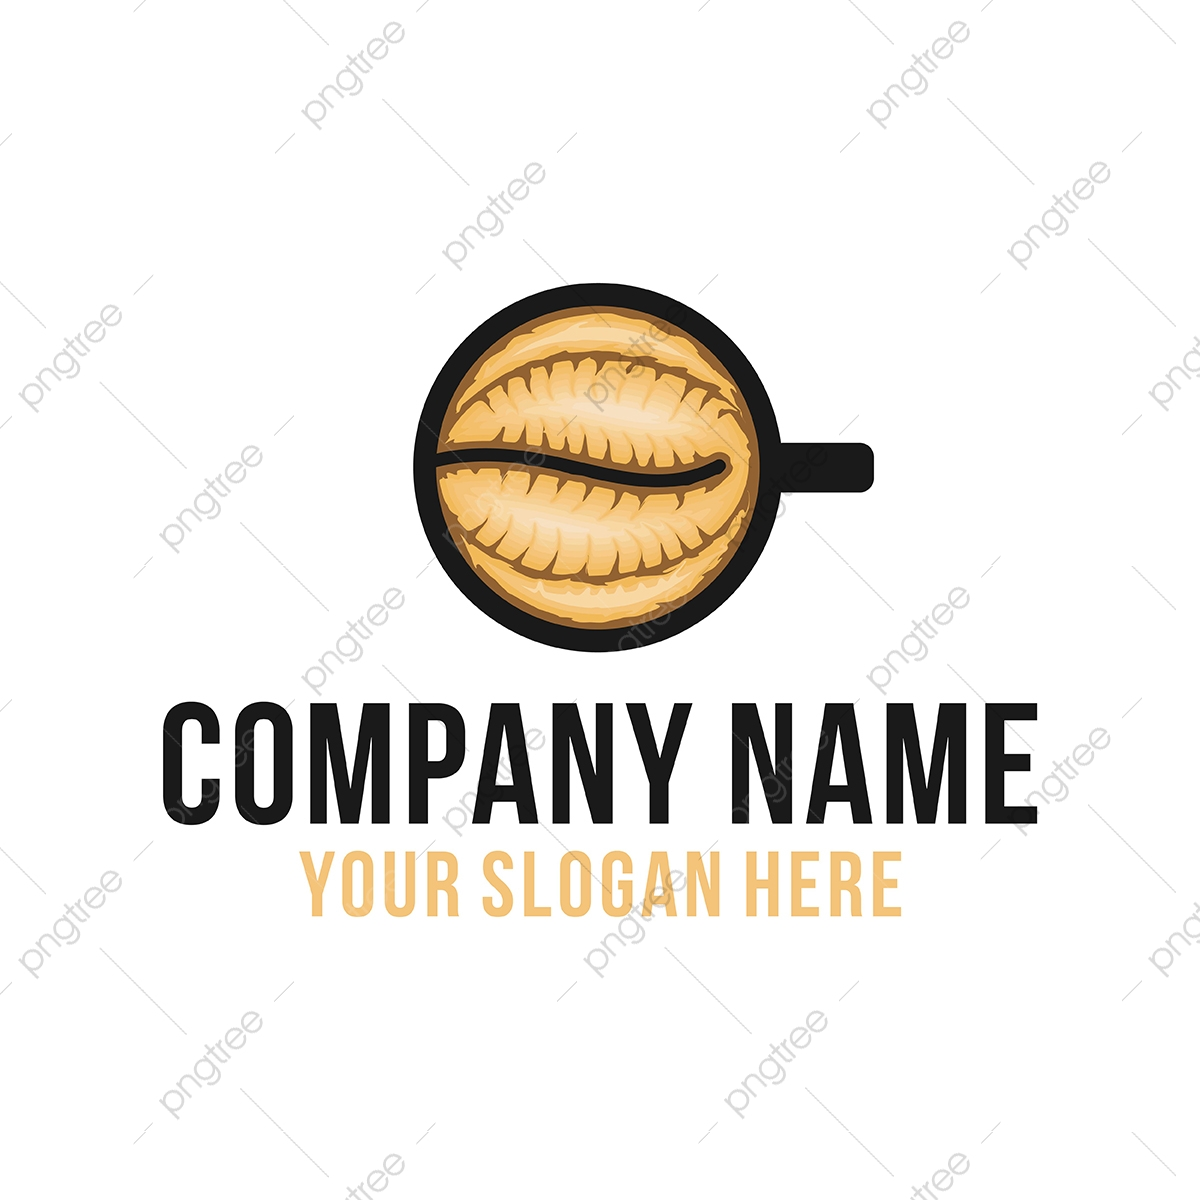 Coffee Shop Logo Designs Inspiration Vector Illustration Template For Free Download On Pngtree